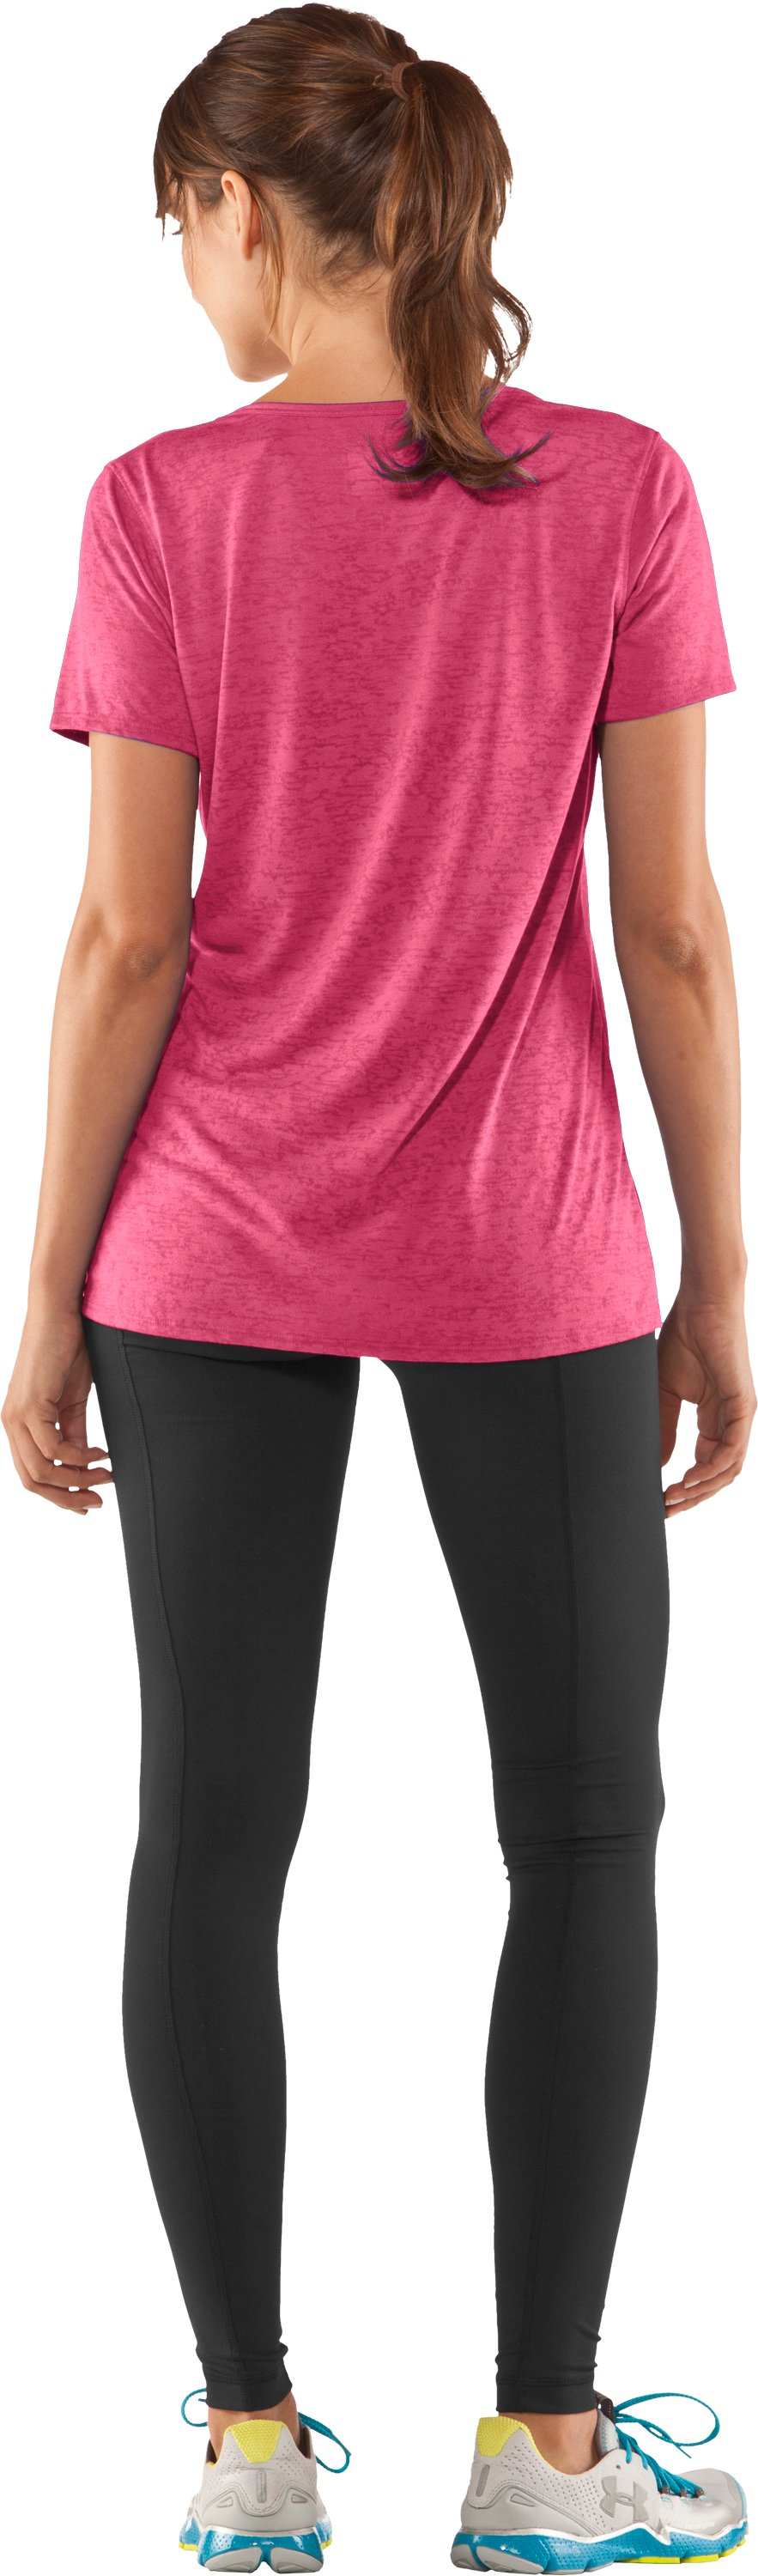 Women's Achieve Burnout T-Shirt, Ultra, Back